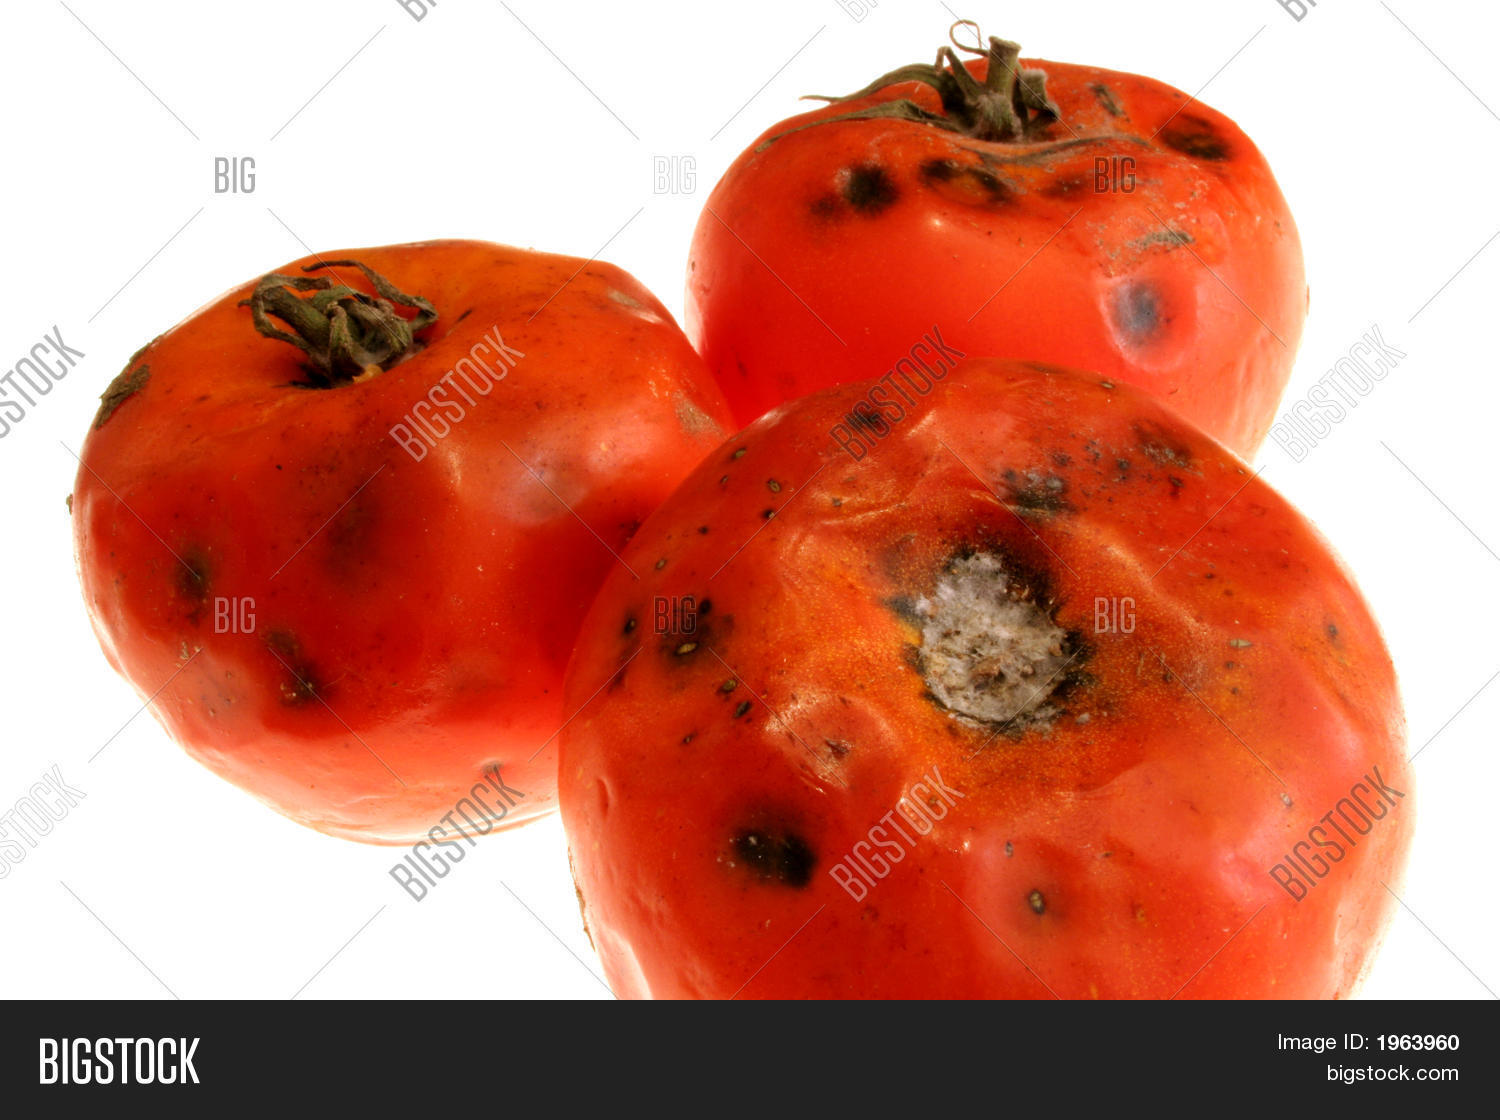 Rotten Tomatoes Image & Photo (Free Trial) | Bigstock